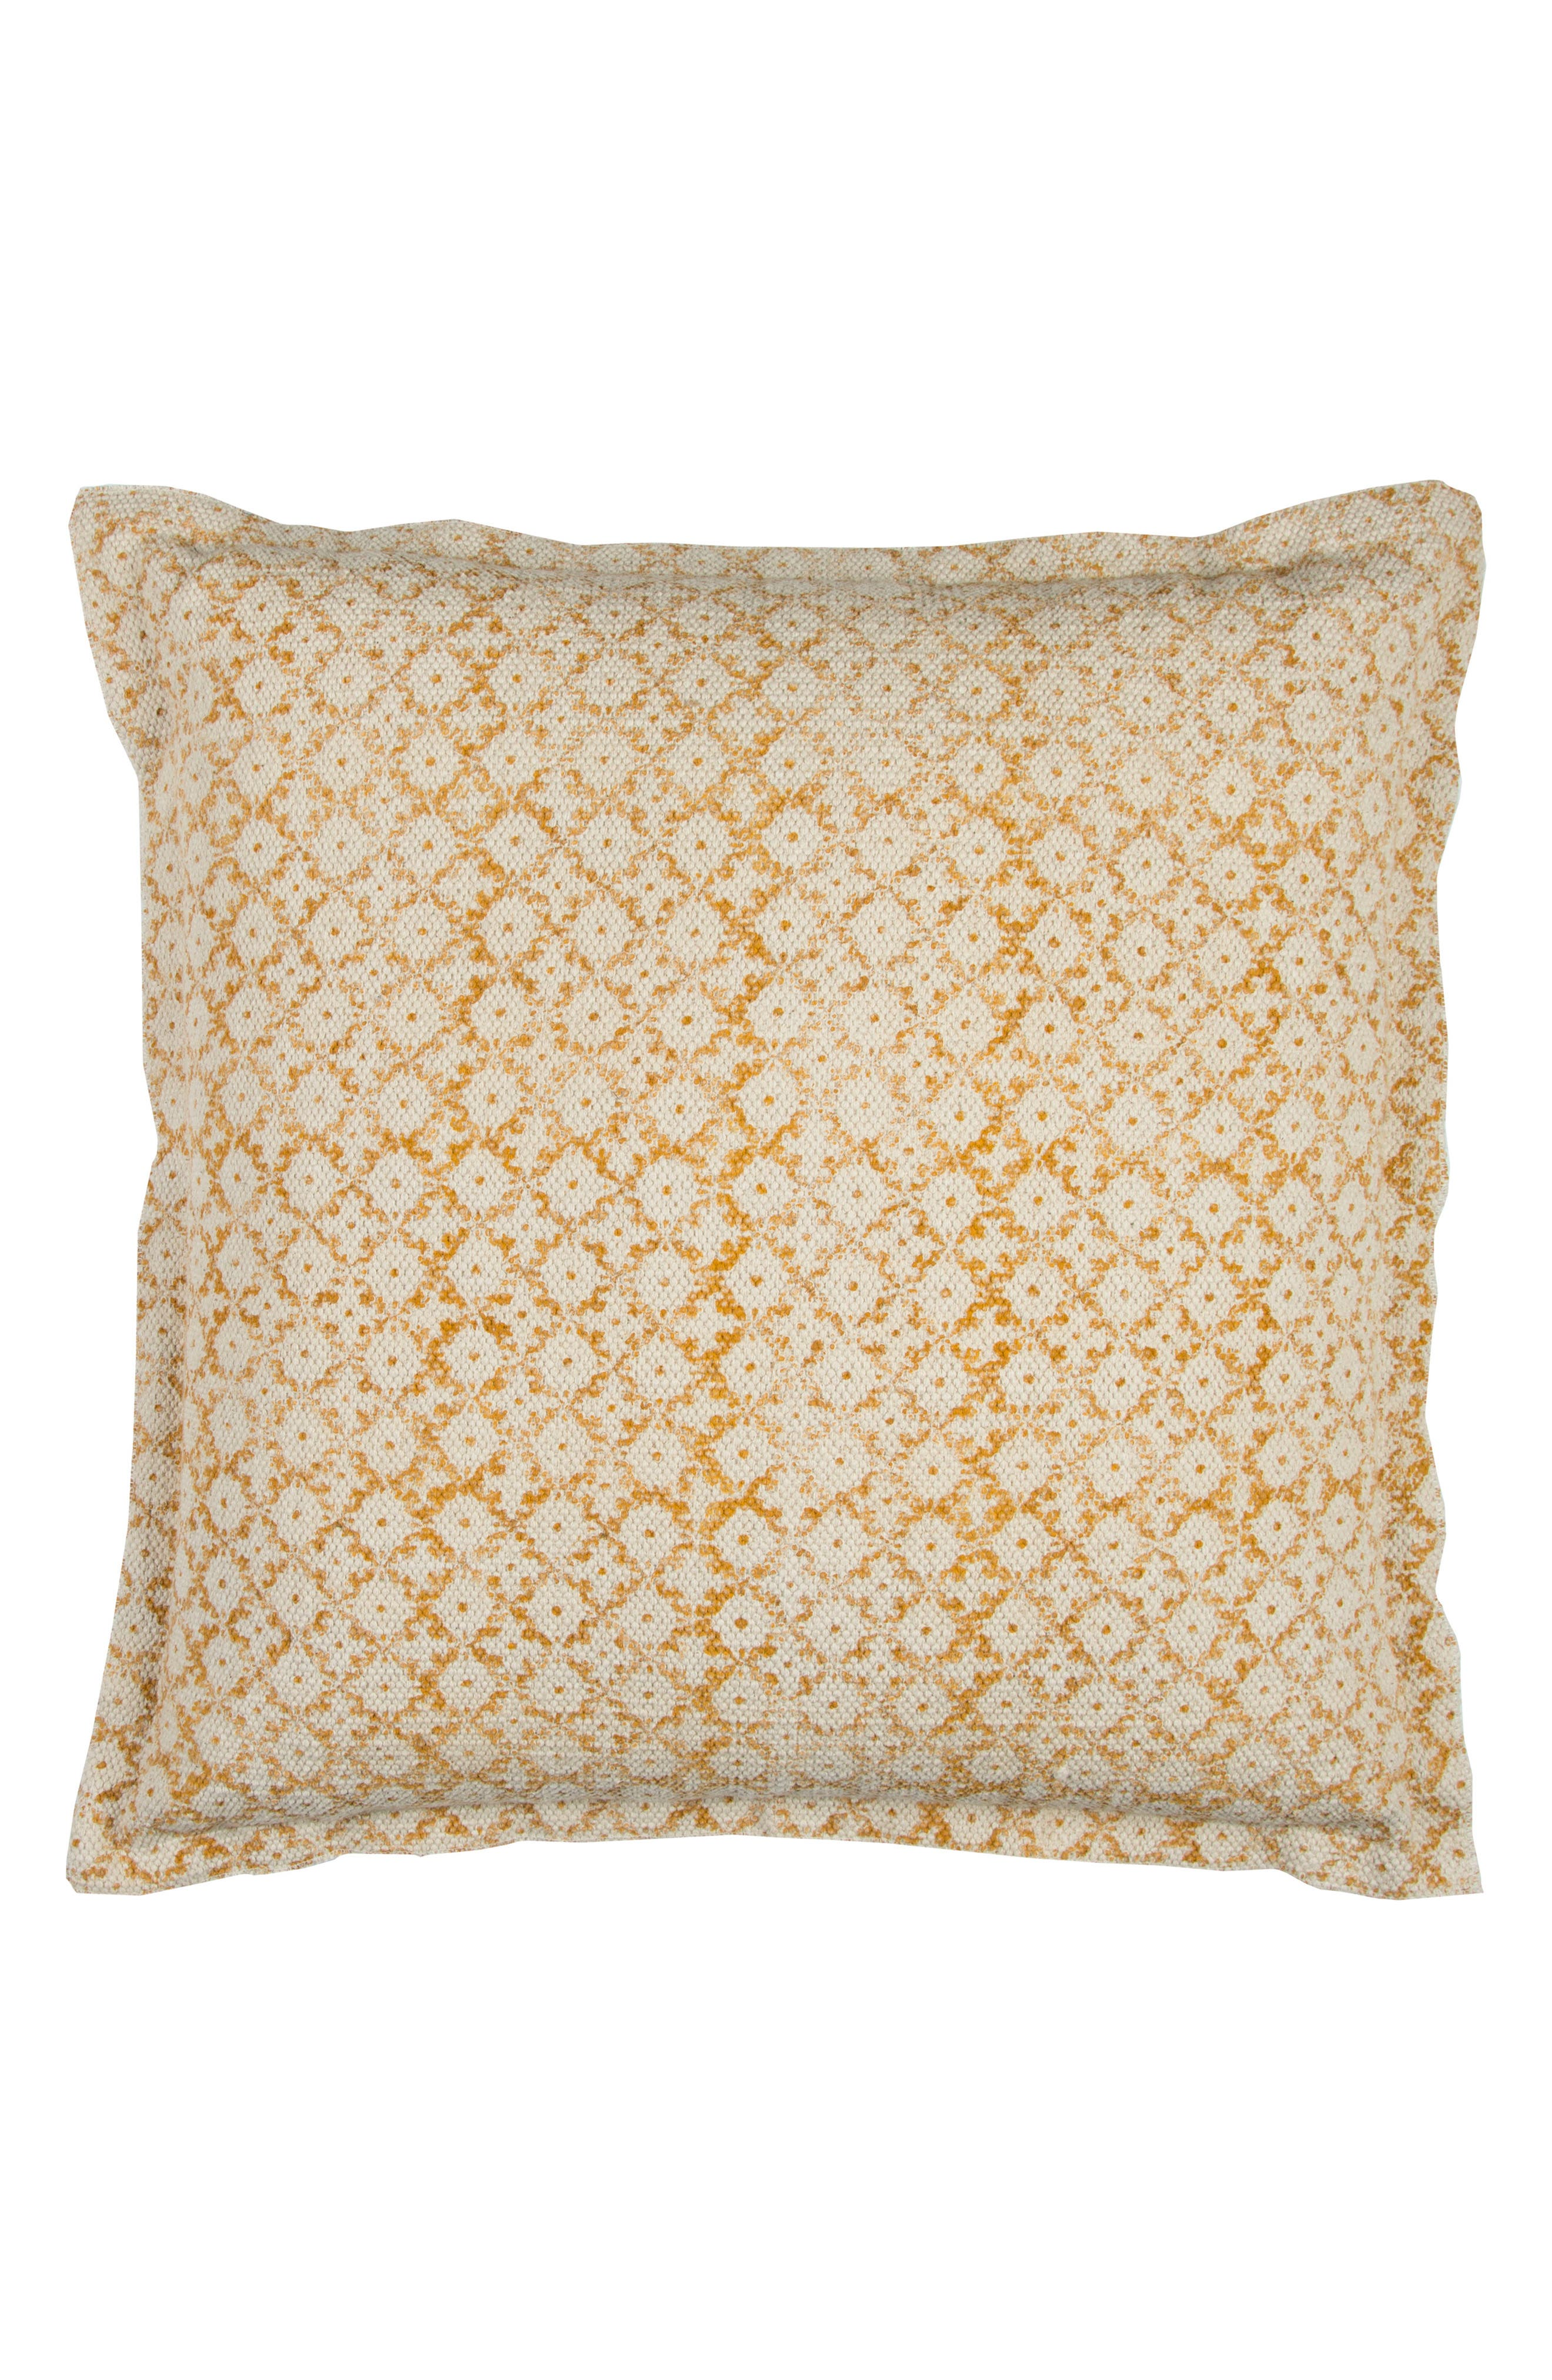 Geometric Accent Pillow,                         Main,                         color, Natural